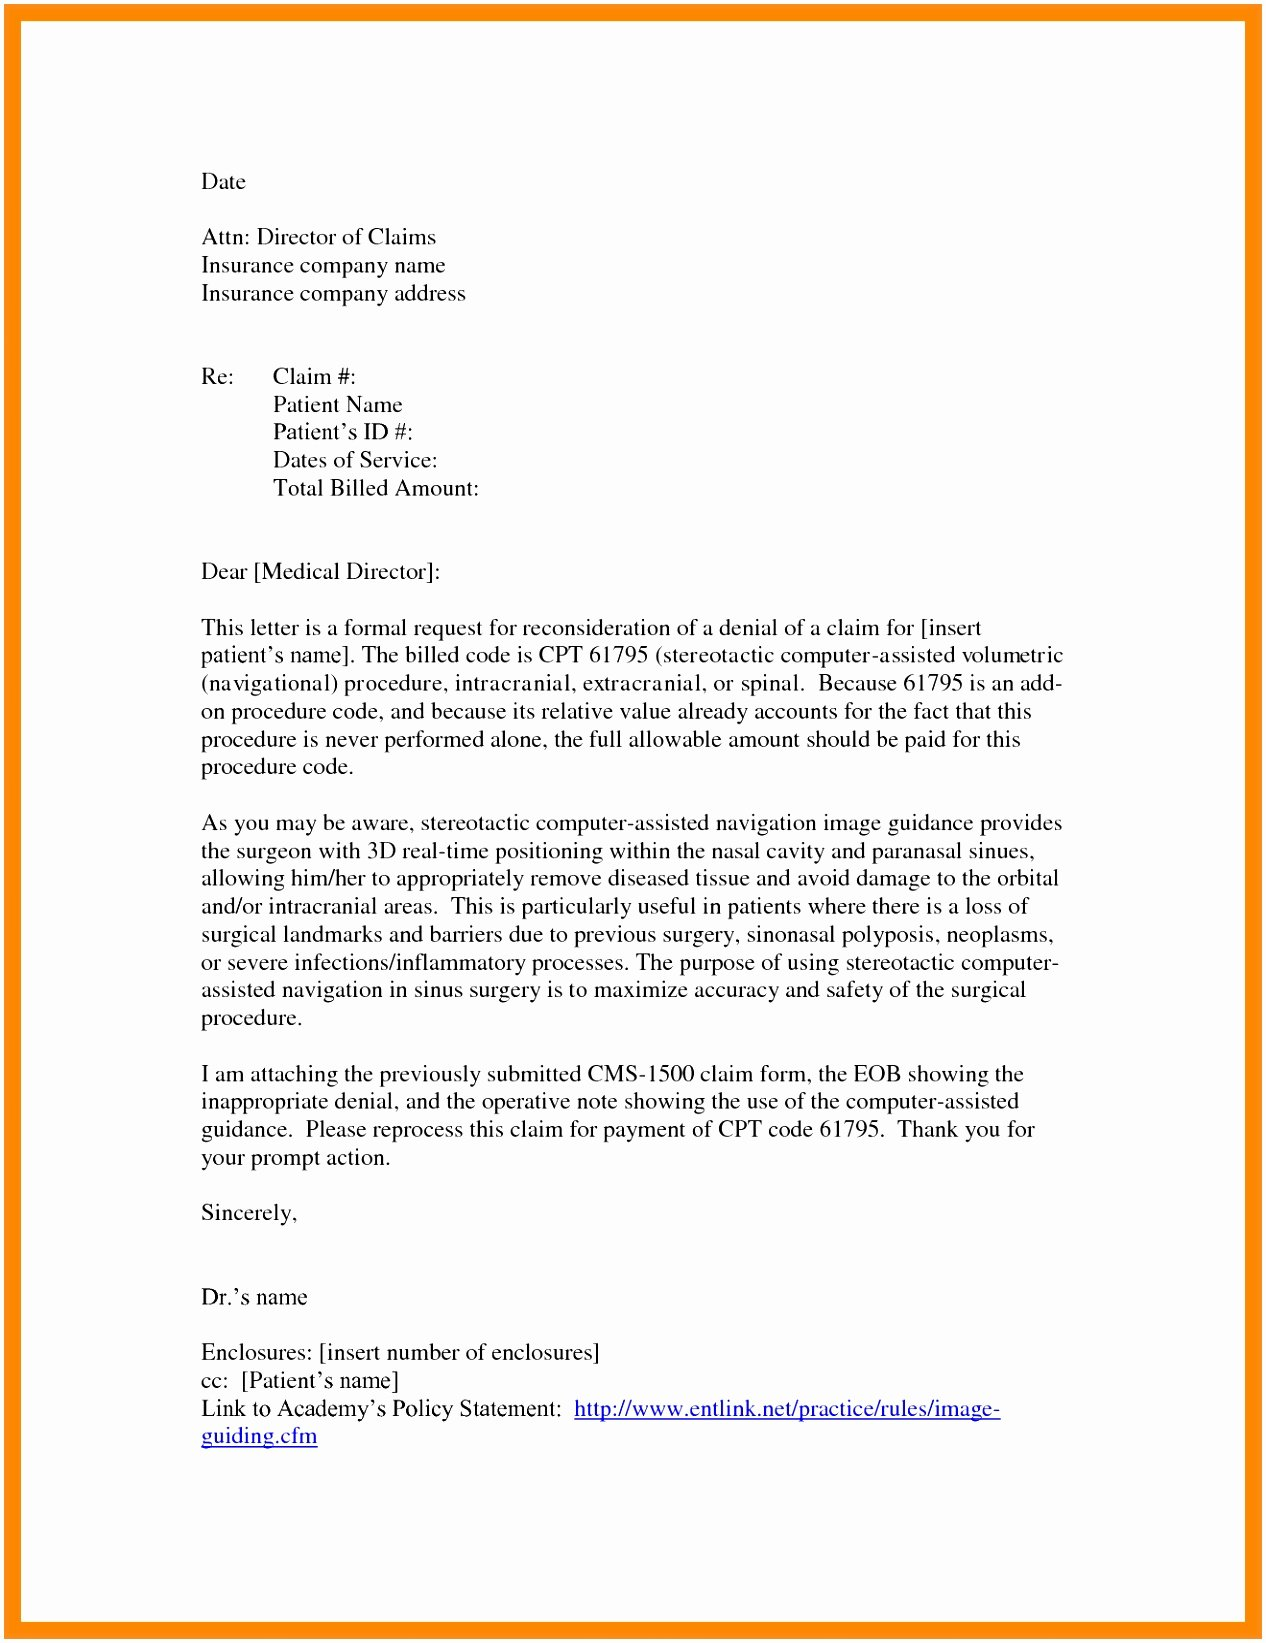 Insurance Appeal Letter Samples Awesome 5 Appeal Letter to Insurance Pany From Provider Tuyiw